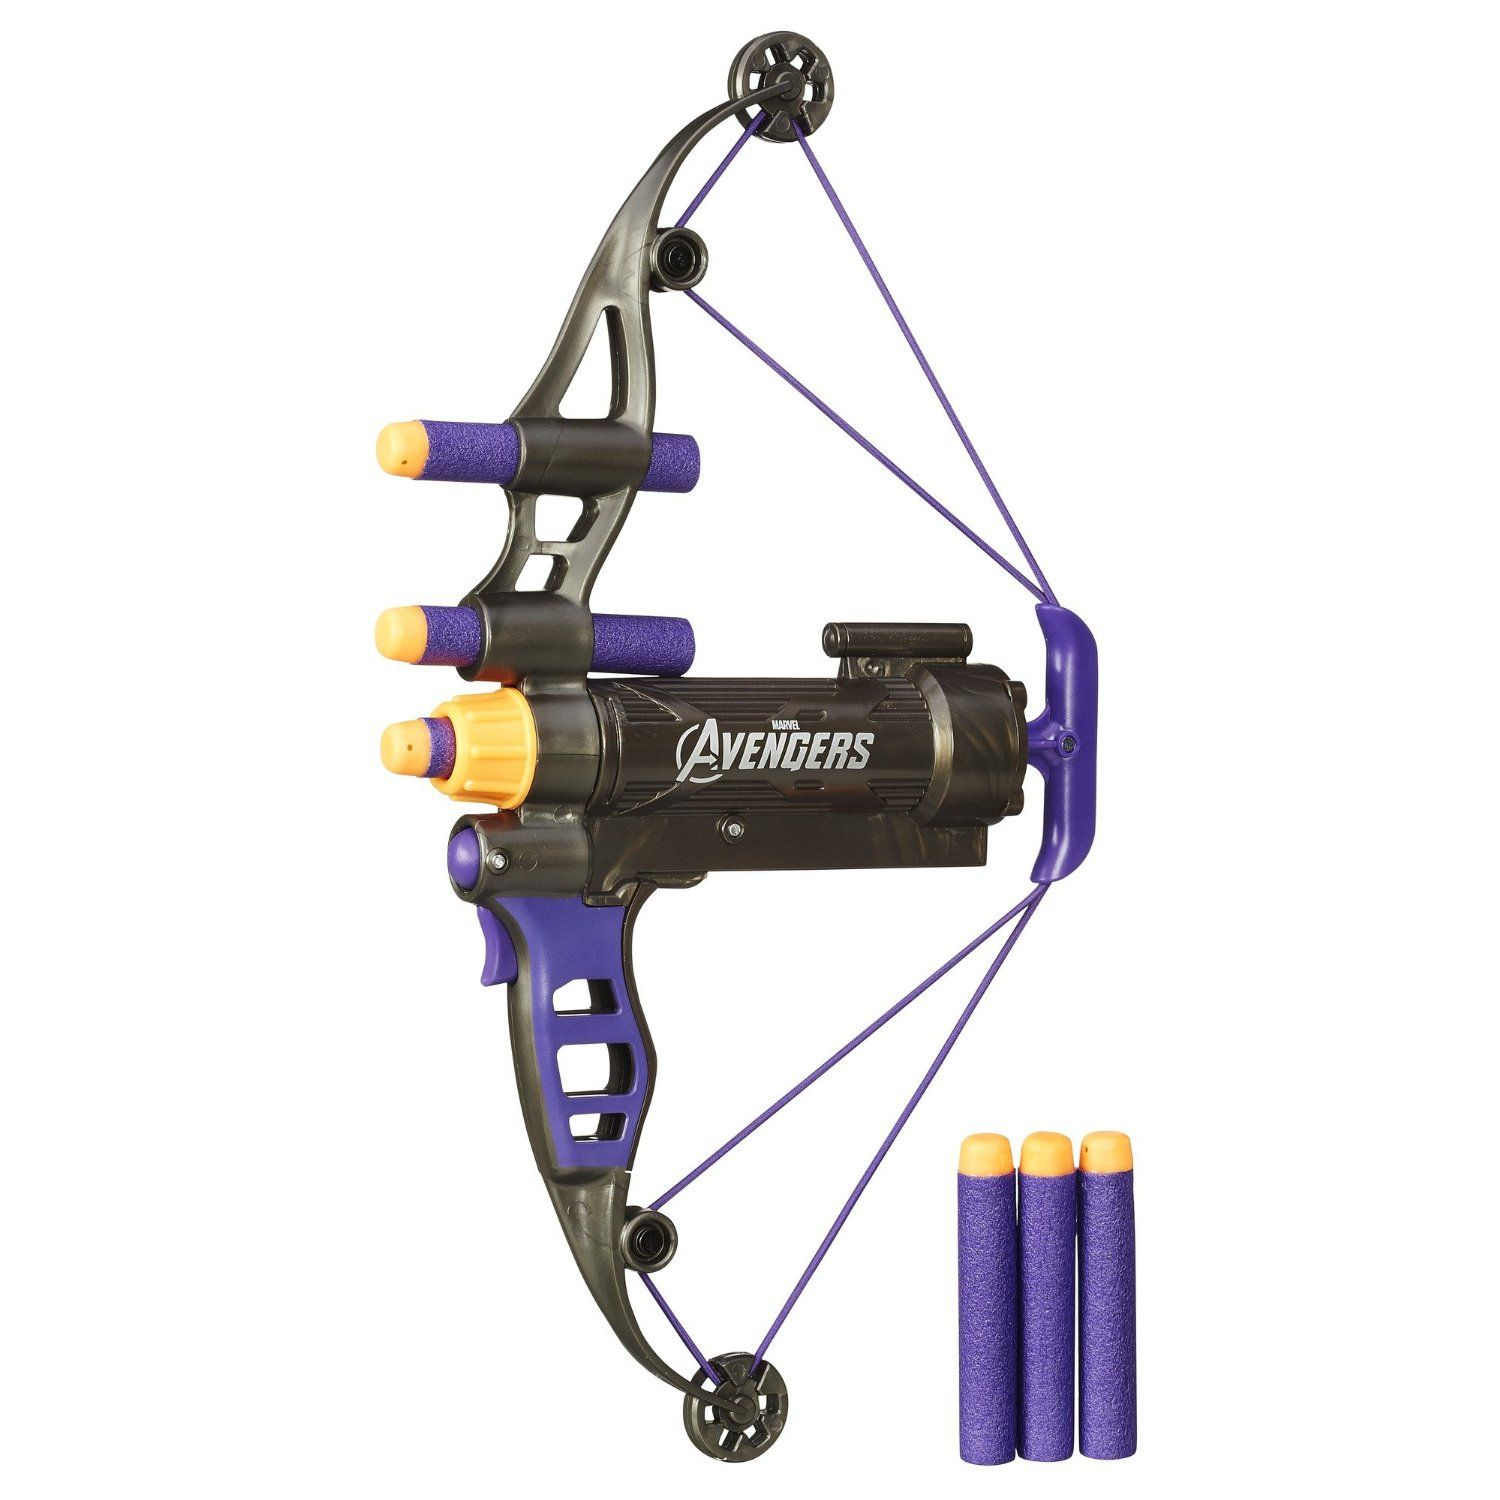 Marvel Avengers Hawkeye Longshot Bow Toy Only $9.84!